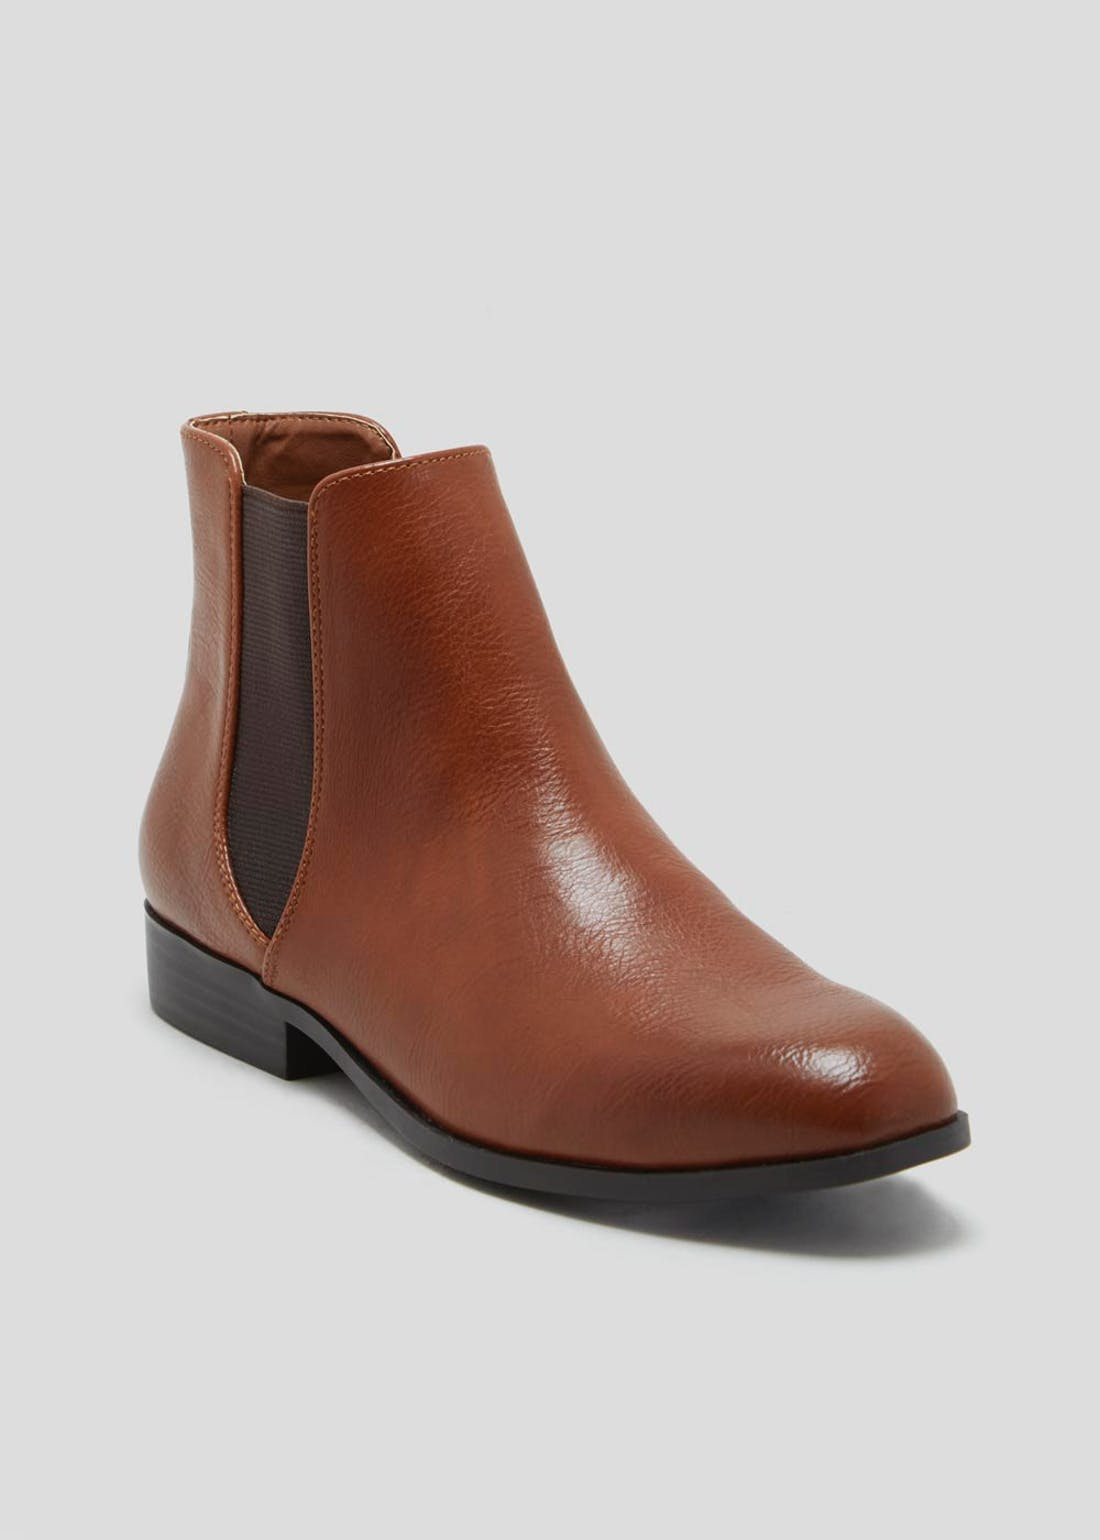 Formal Flat Chelsea Boots